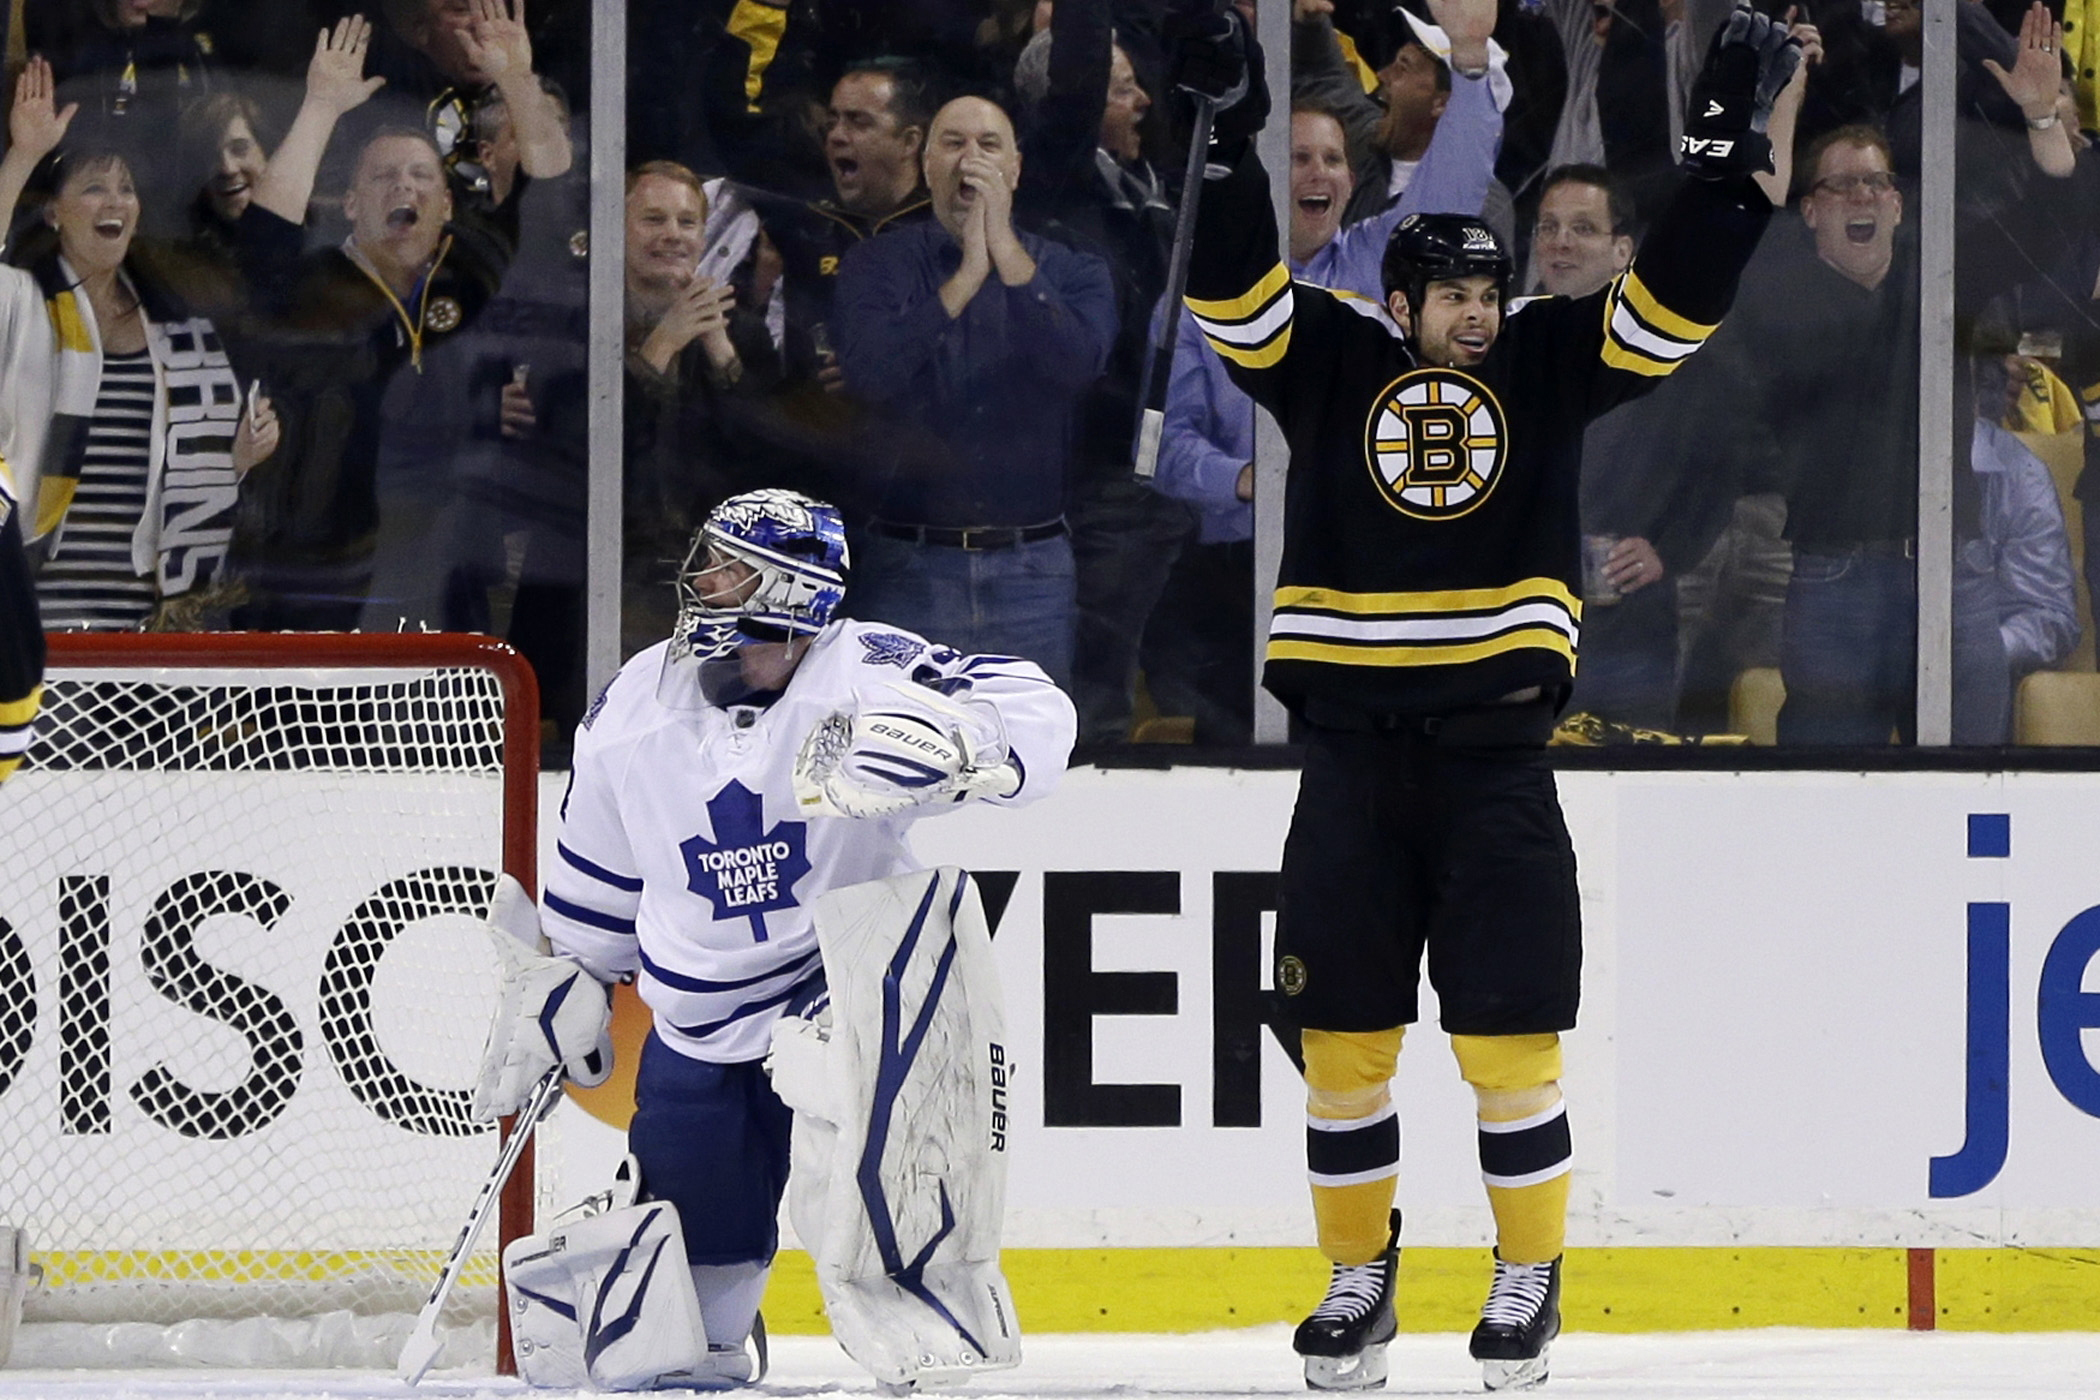 0aca76a4910 Bruins beat Maple Leafs 4-1 in game one of playoffs